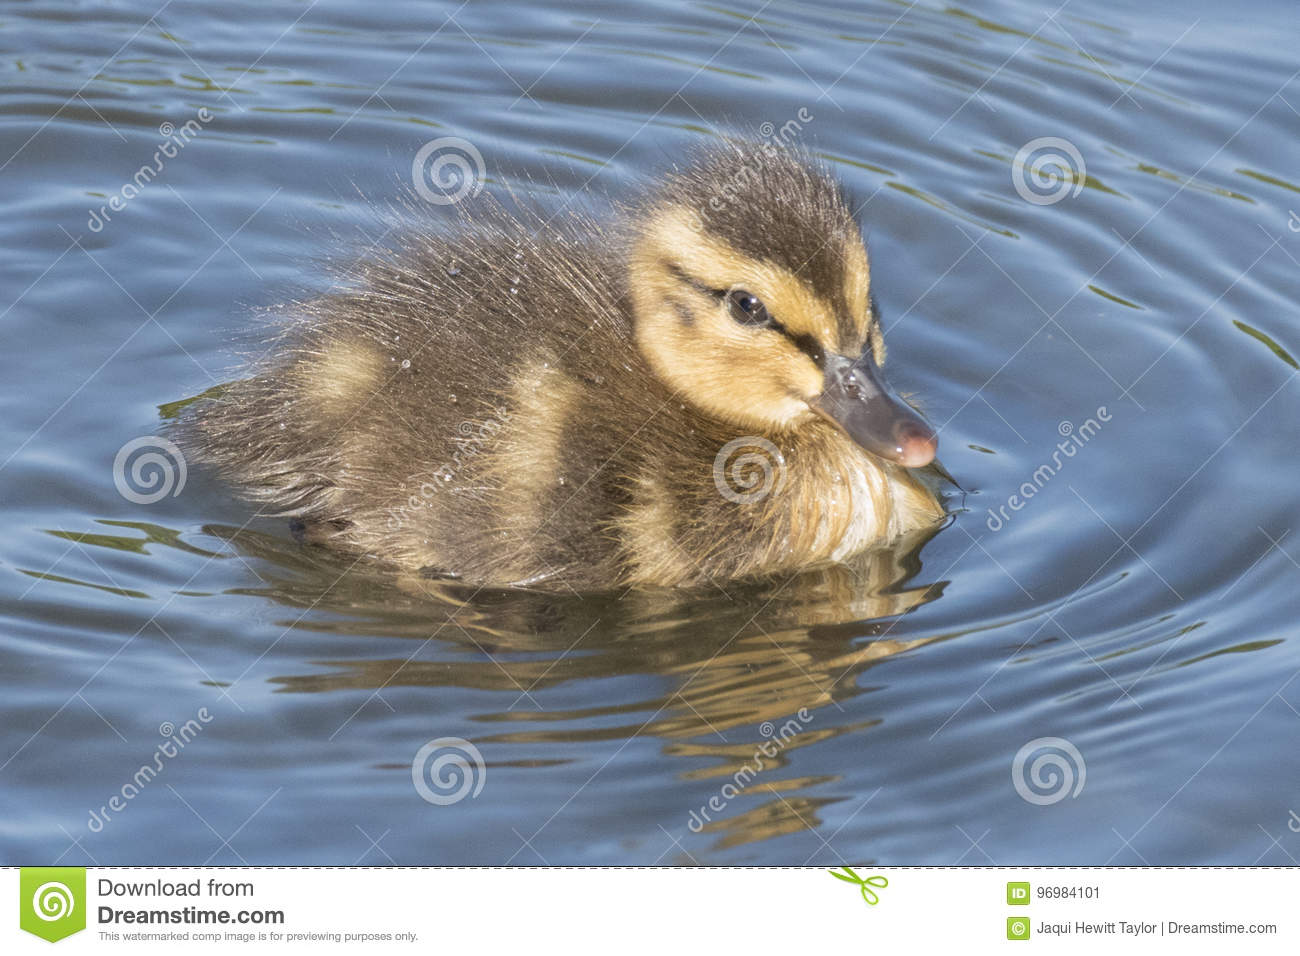 Duckling on Southampton Common